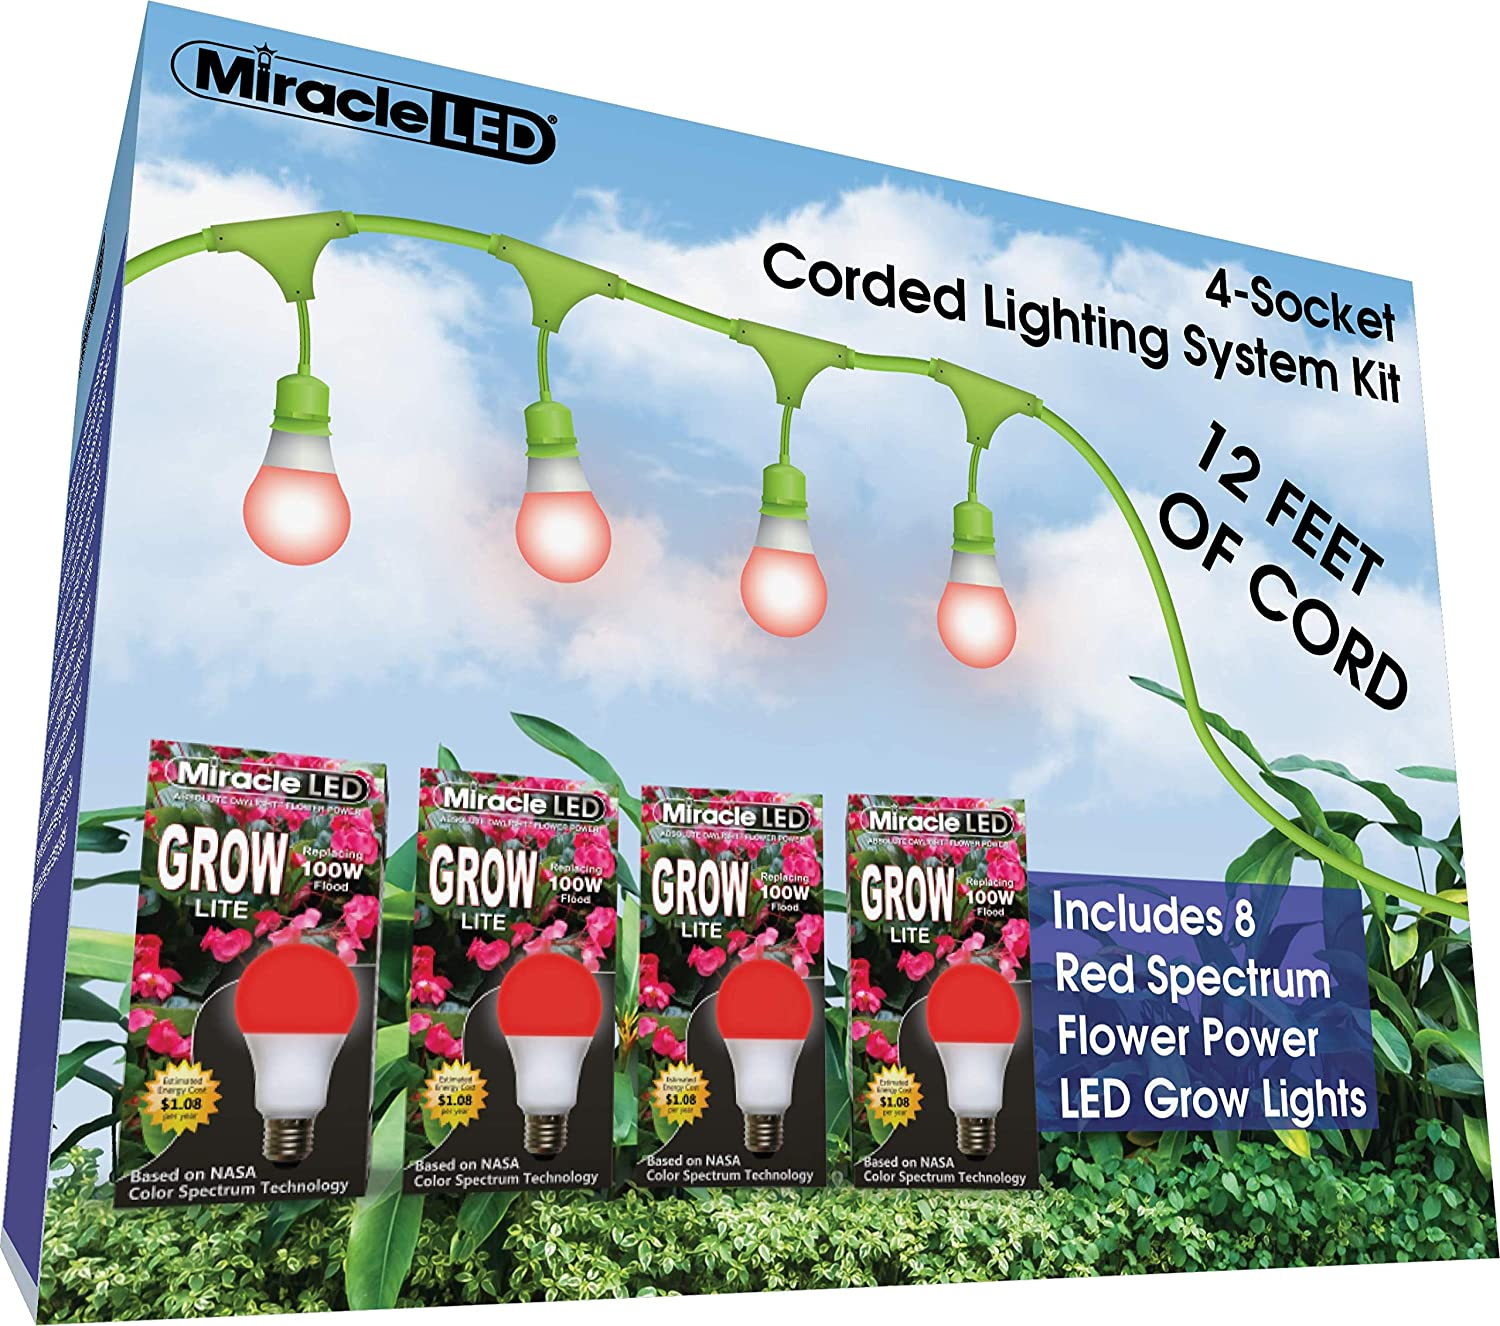 Miracle LED 602843 12ft Corded System Kit with 8 Red Spectrum Grow Lights